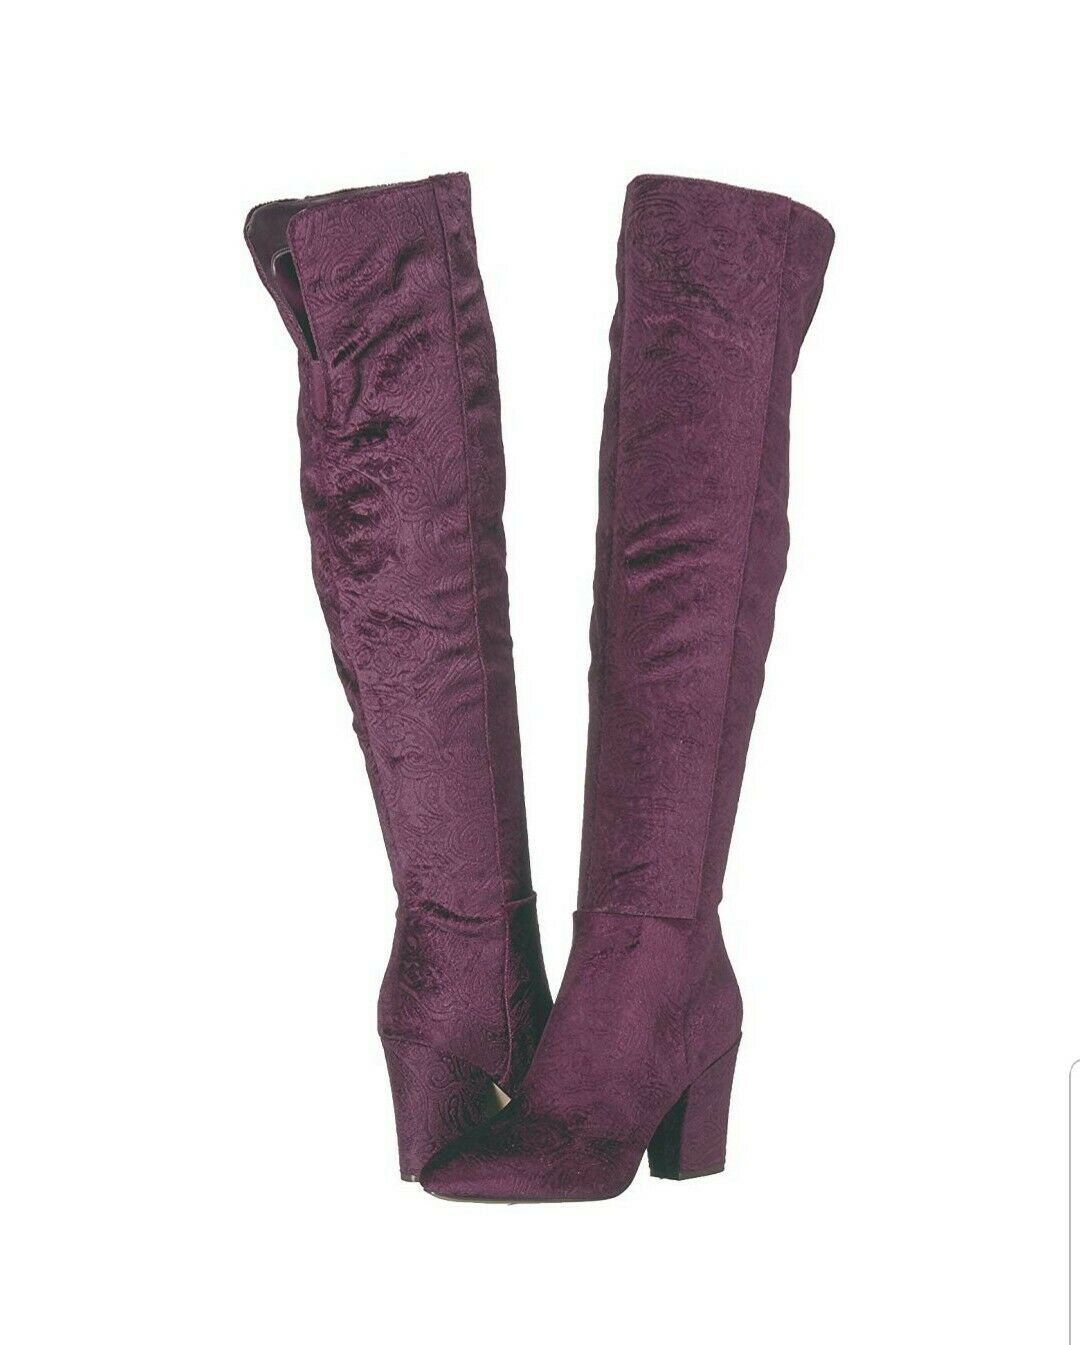 Nine West Siventa Burgundy Over The Knee Boots 7 1 2 7.5